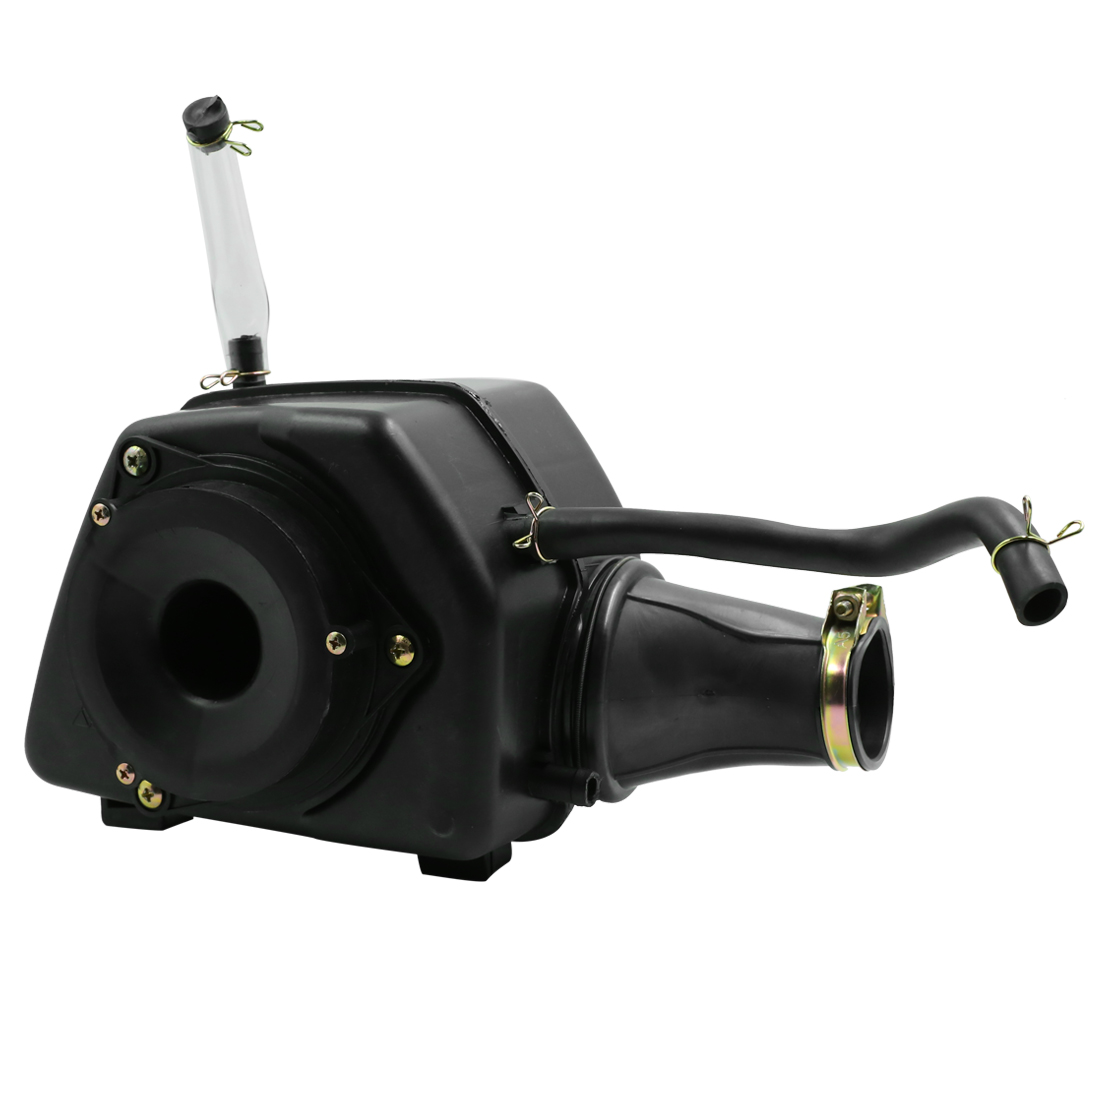 Black Motorcycle Air Cleaner Case Intake Filter Box Assembly for GN125 CBT